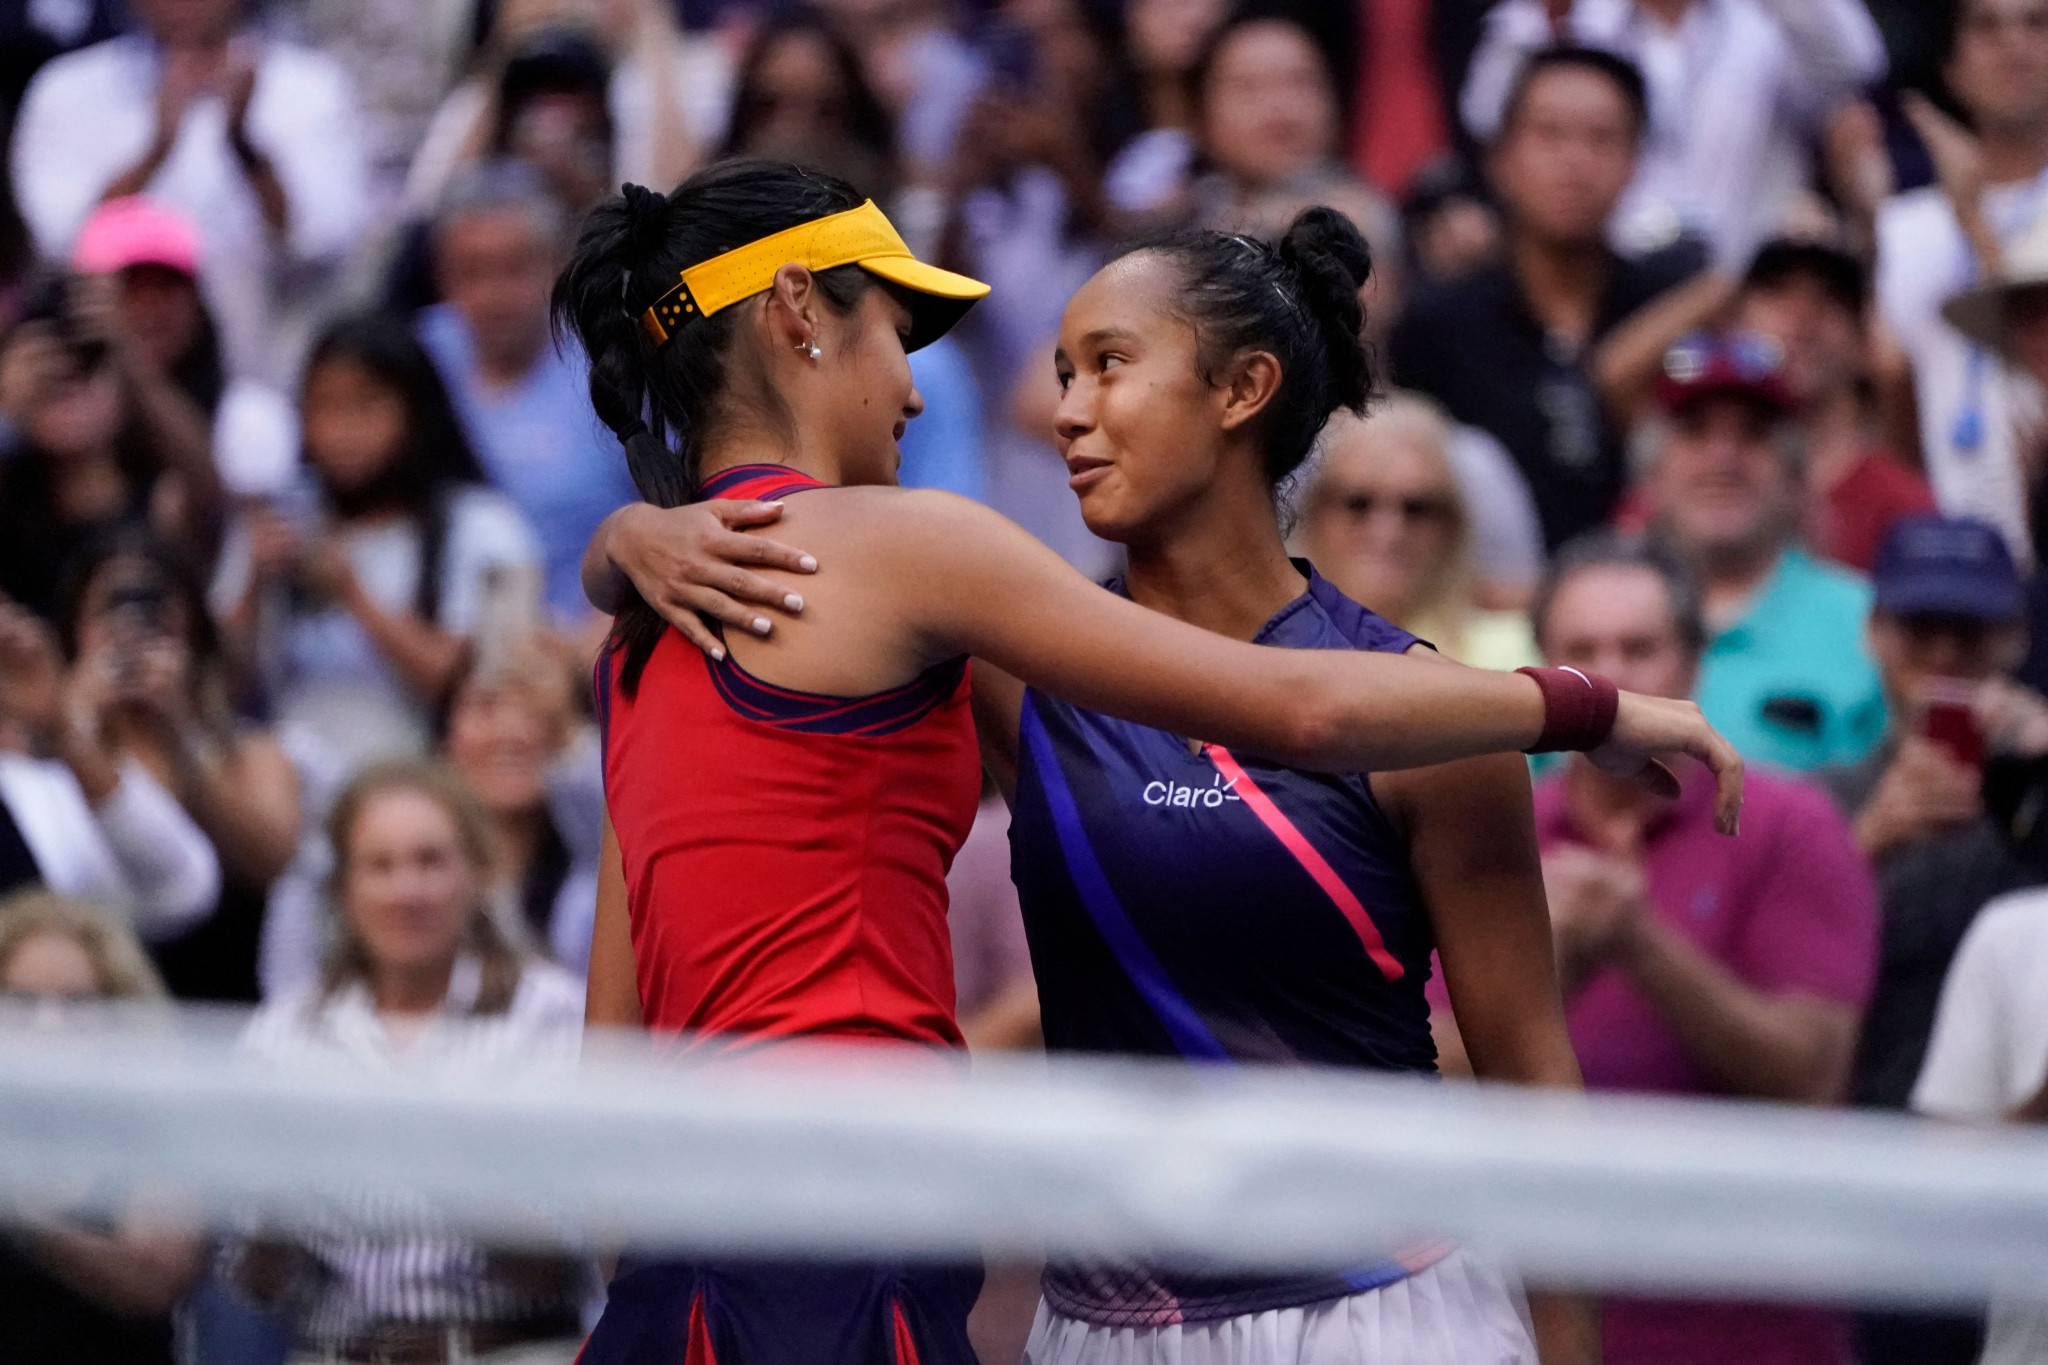 The US Open women's singles final - the youngest at the Grand Slam since 1999 - was so youthful that both players were born after the September 11 terror attacks, which took place exactly 20 years ago to the day ©Getty Images